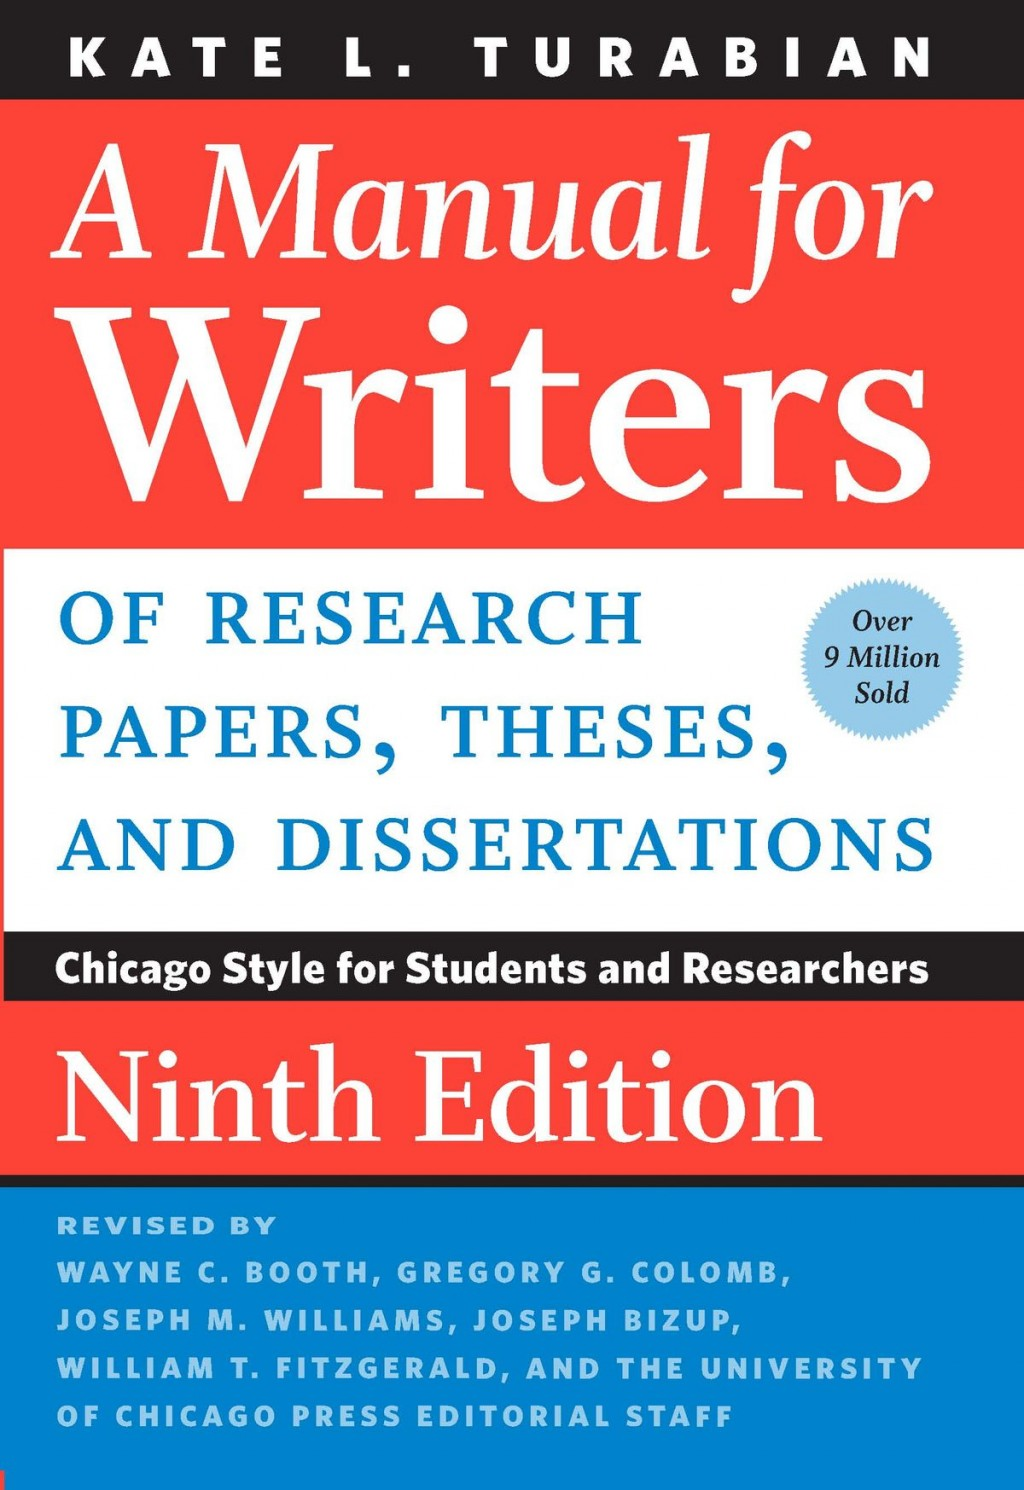 001 Manual For Writers Of Researchs Theses And Dissertations 9th Edition Pdf Ninth Wonderful A Research Papers Large